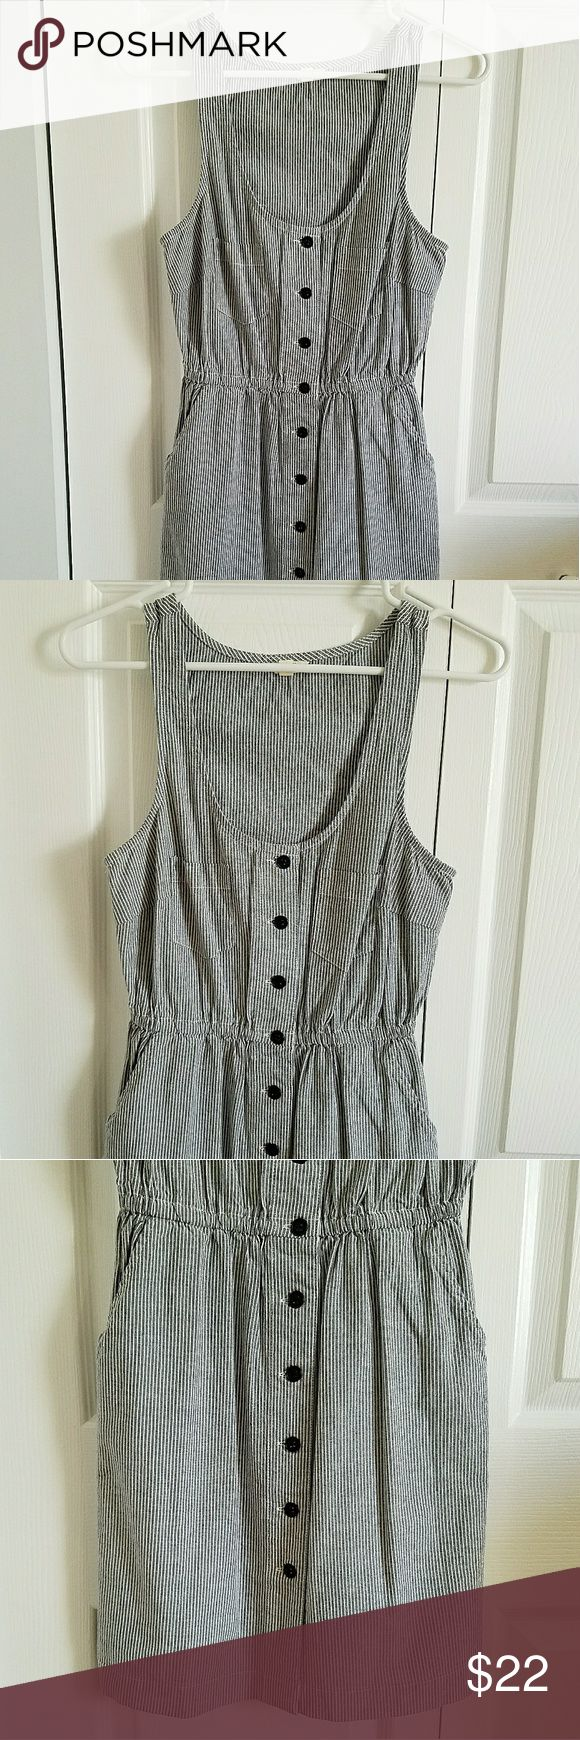 FOREVER 21 Sleeveless Button Down Dress Striped Women's FOREVER 21 sleeveless button down dress. Size Small. Short length. Gray blue & white vertical stripes. Scoop neck. Empire waist, with an elastic band. Two breast pockets, as well as two side pockets. 97% cotton, 3% spandex.  Measurements (while lying flat): Shoulder to shoulder- 11 inches Armpit to armpit- 16 1/2 inches Sleeve length- n/a Top to bottom hem- 33 inches  PREOWNED. Never worn. No rips, stains or odor. Forever…